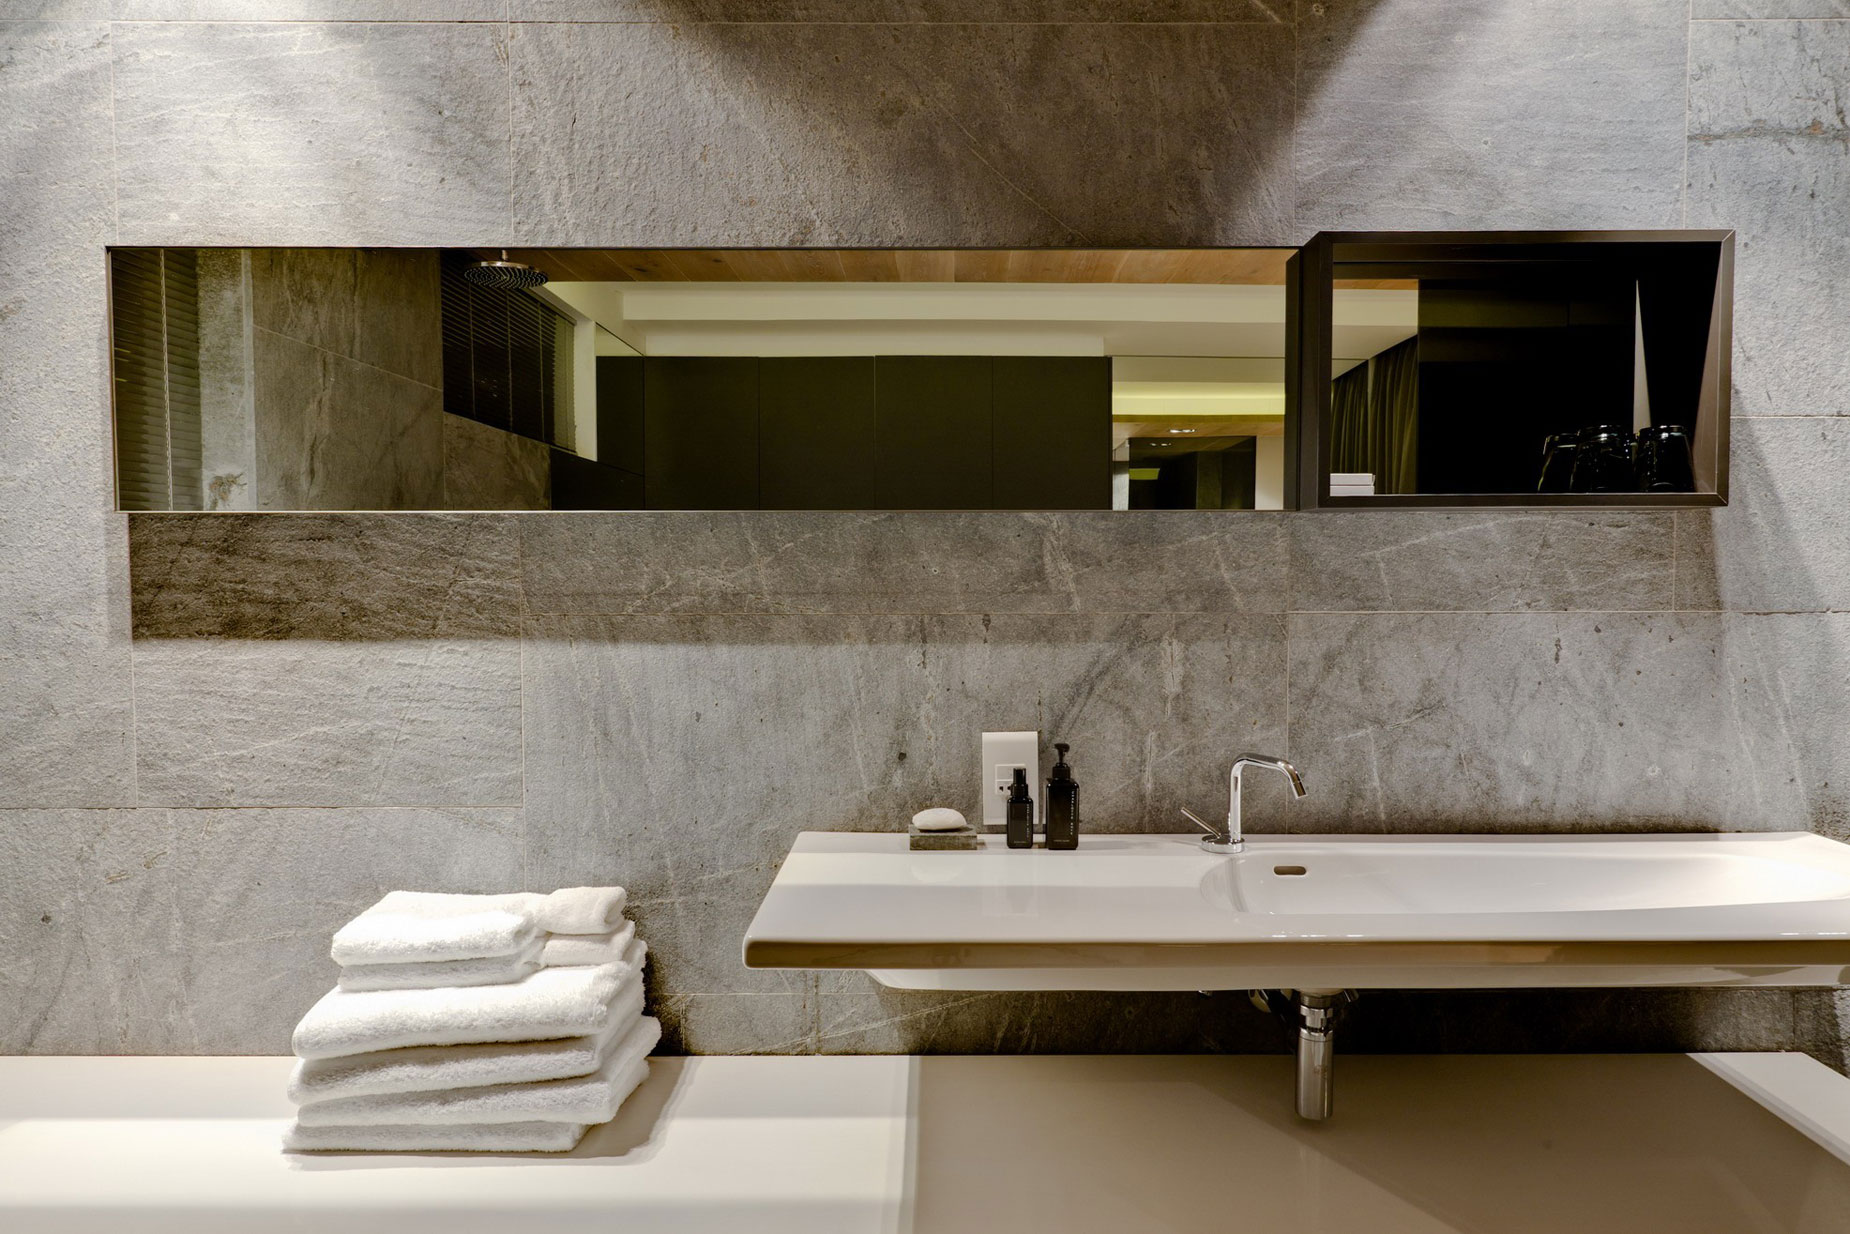 Pod boutique hotel by greg wright architects caandesign for High end boutique hotels